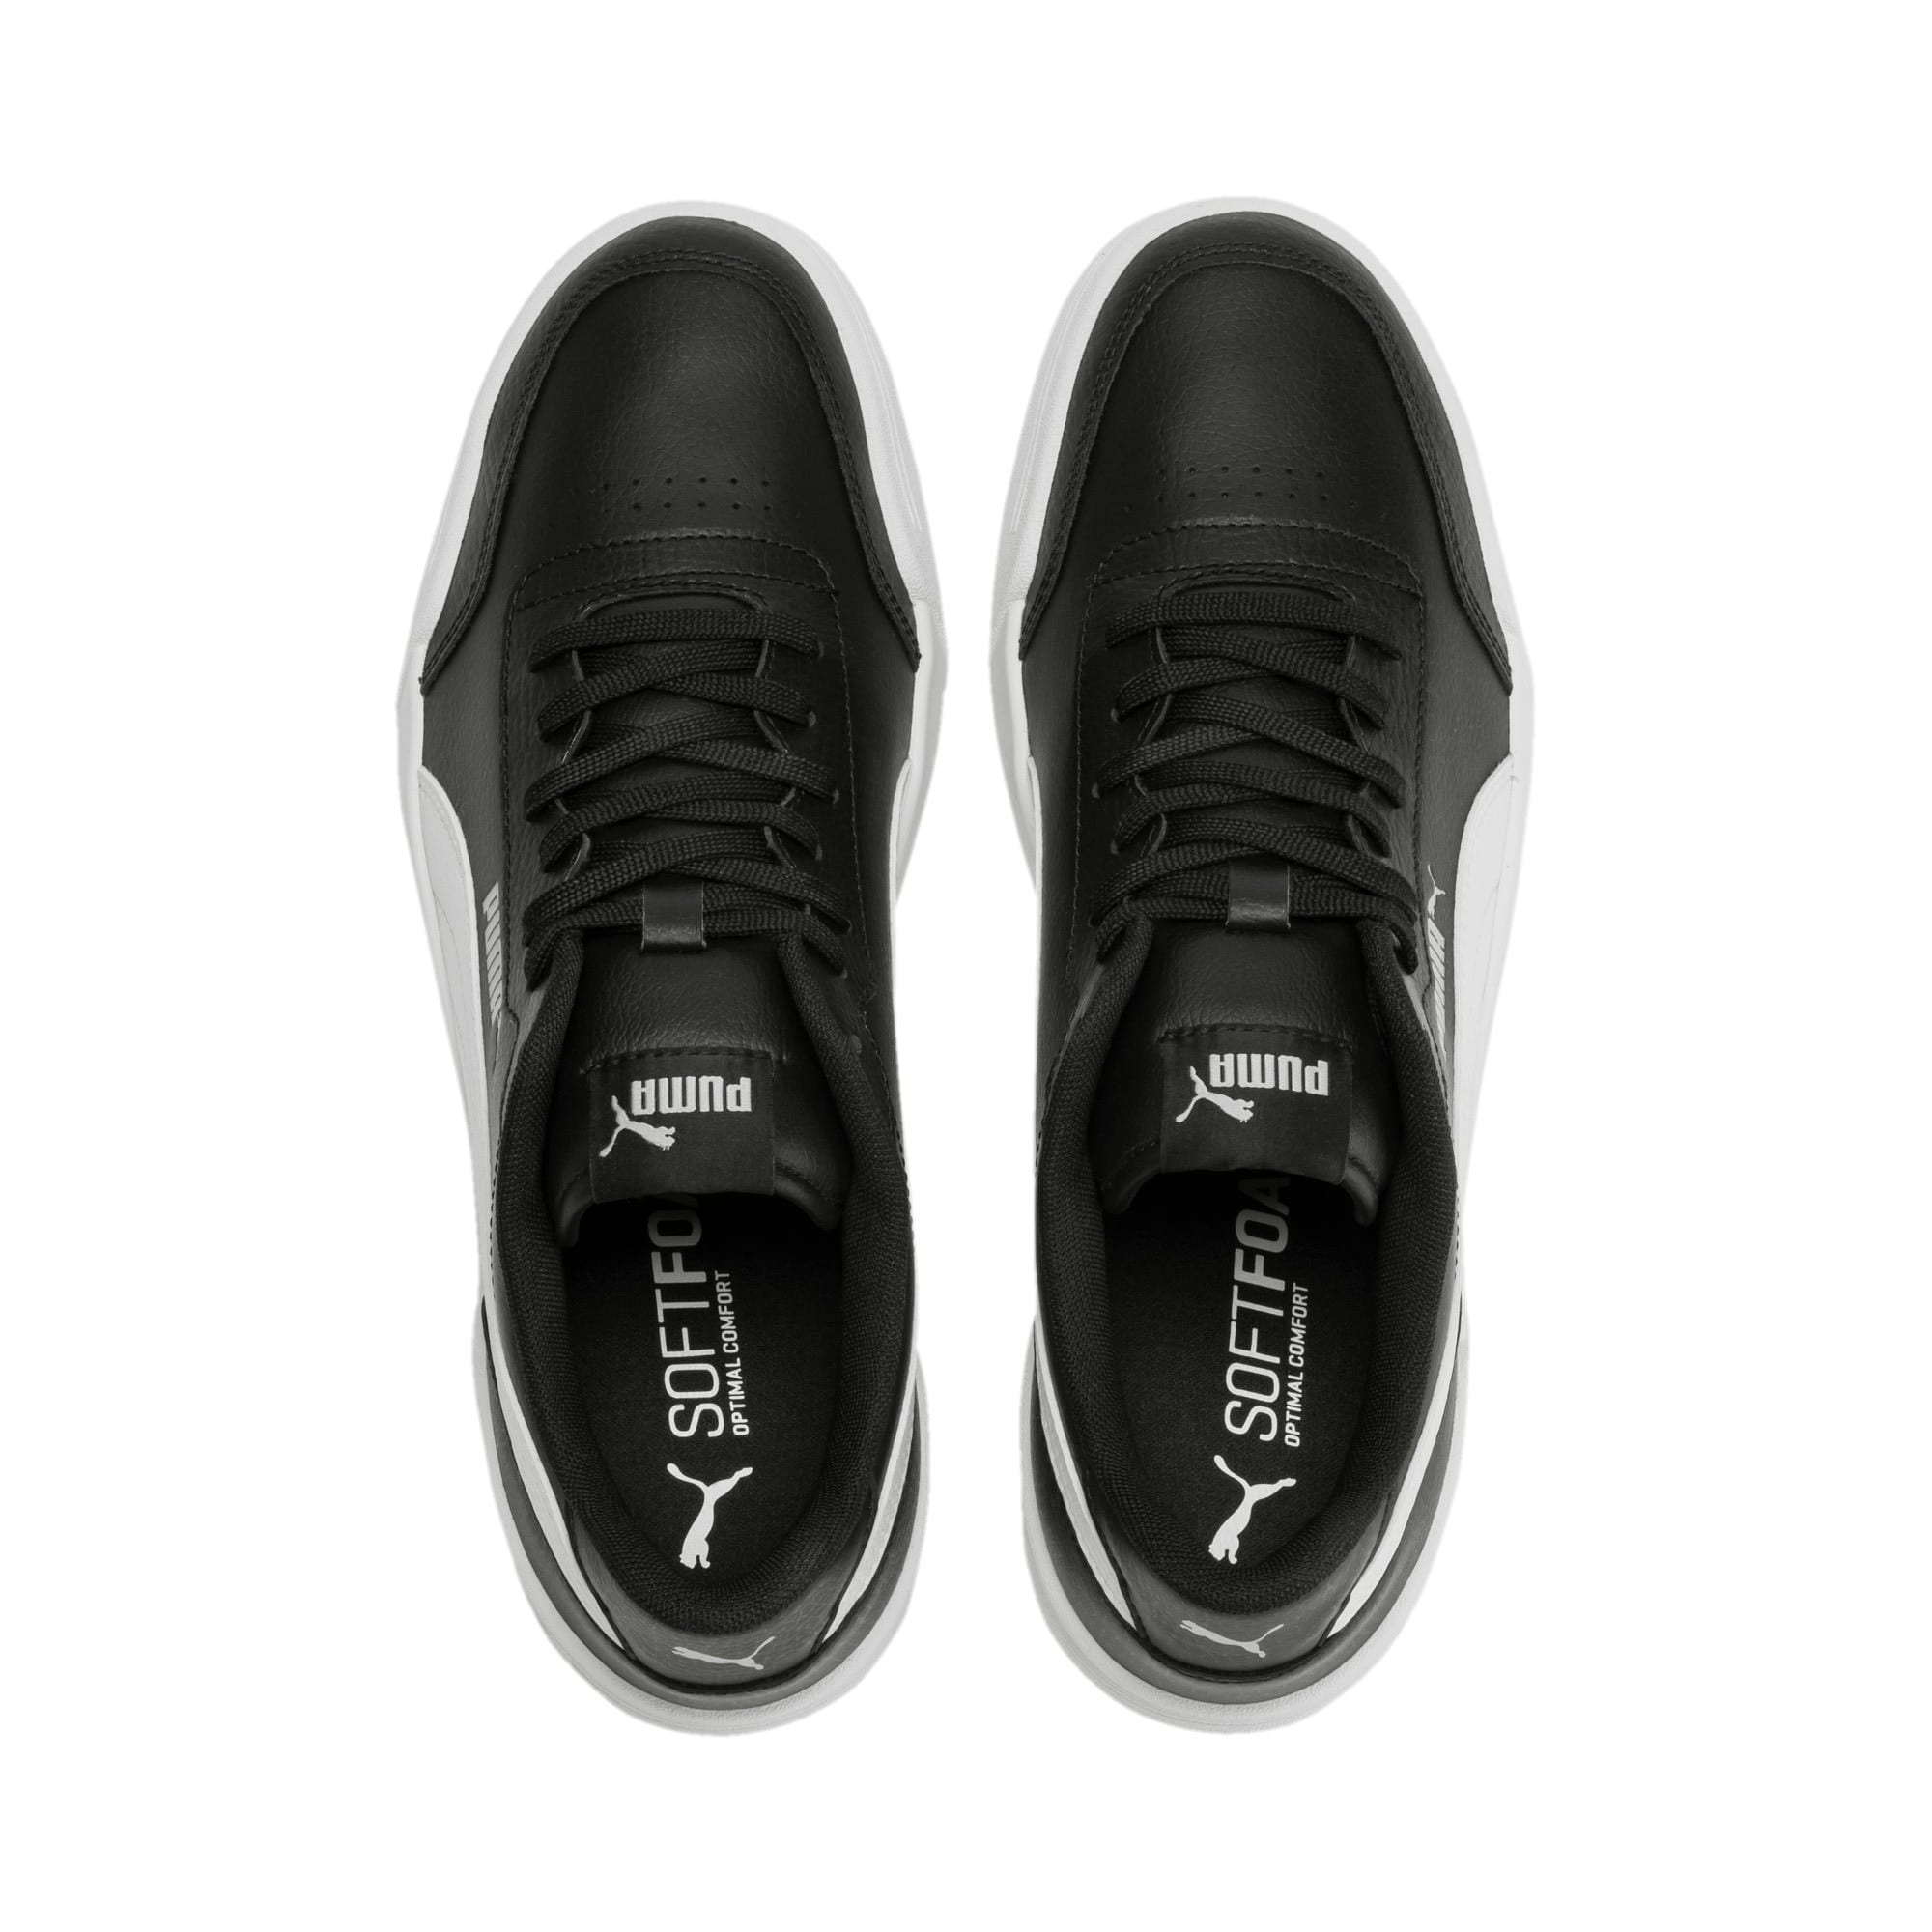 Thumbnail 7 of Caracal Sneakers, Puma Black-Puma White, medium